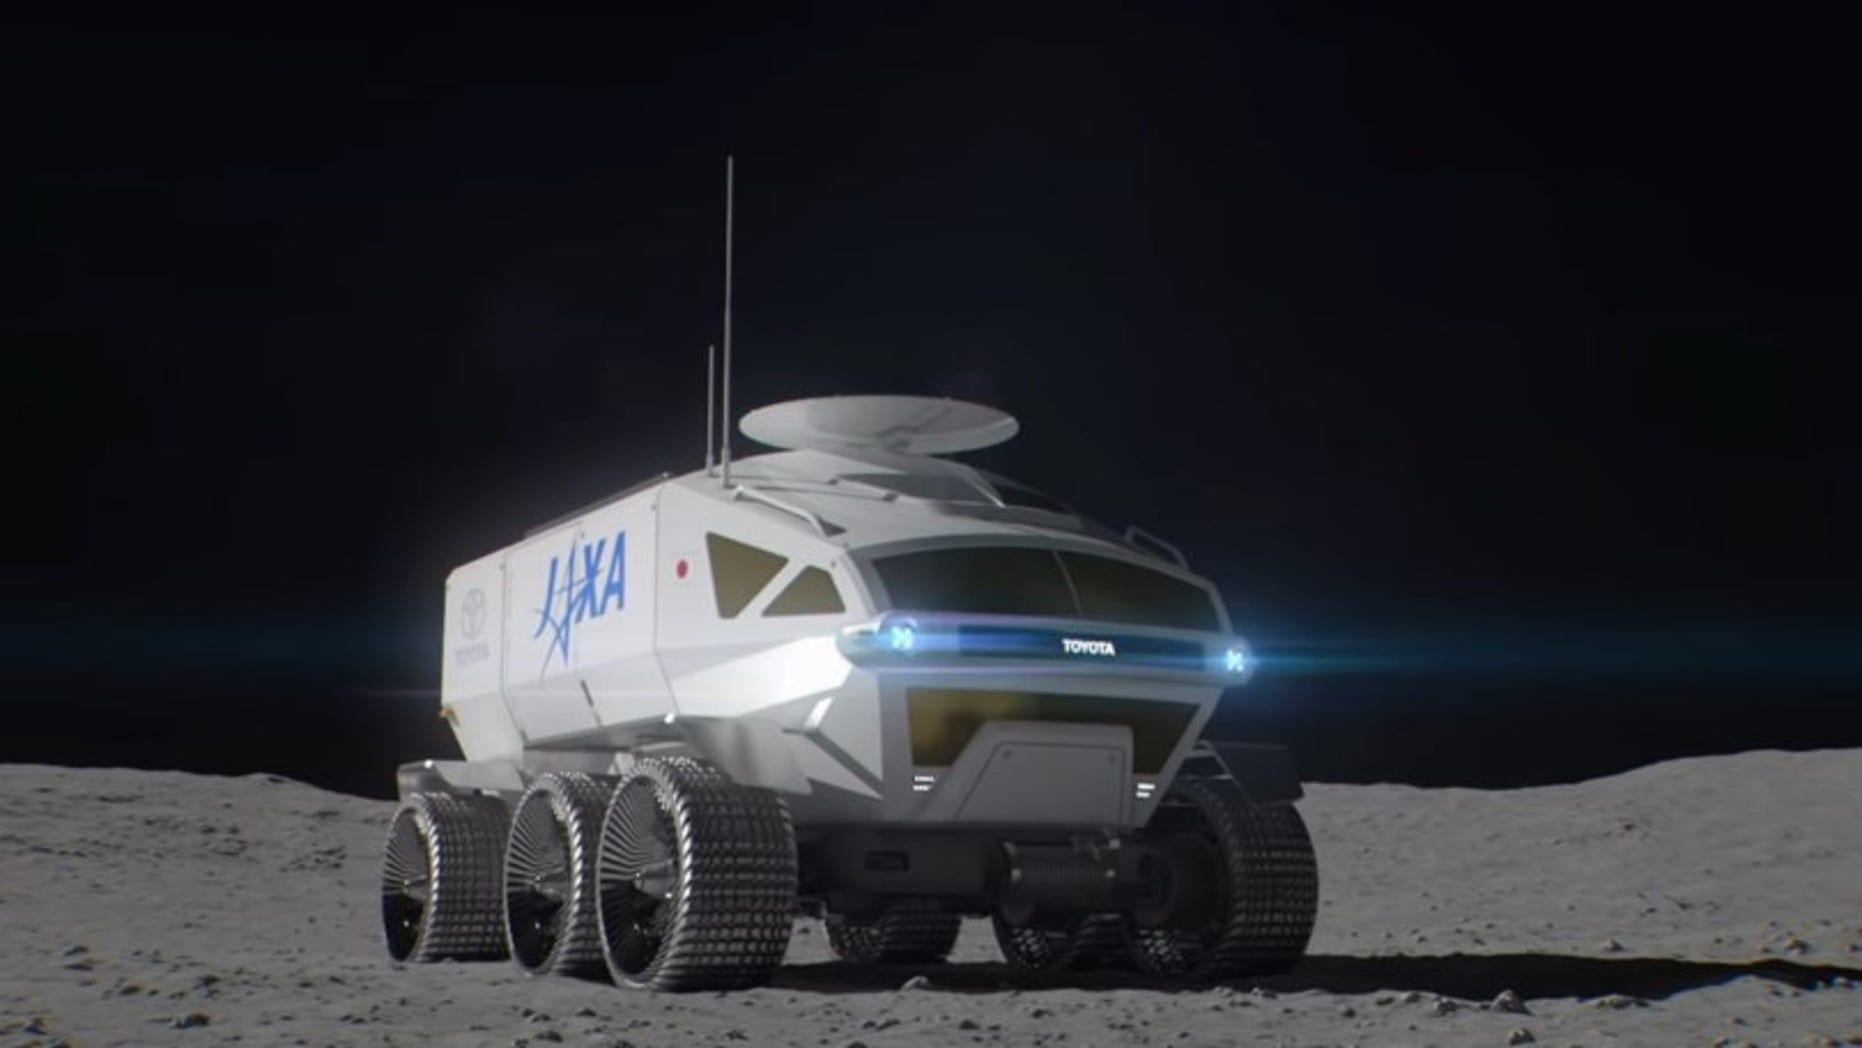 Japan Announces Plans to Send Toyota to the Moon